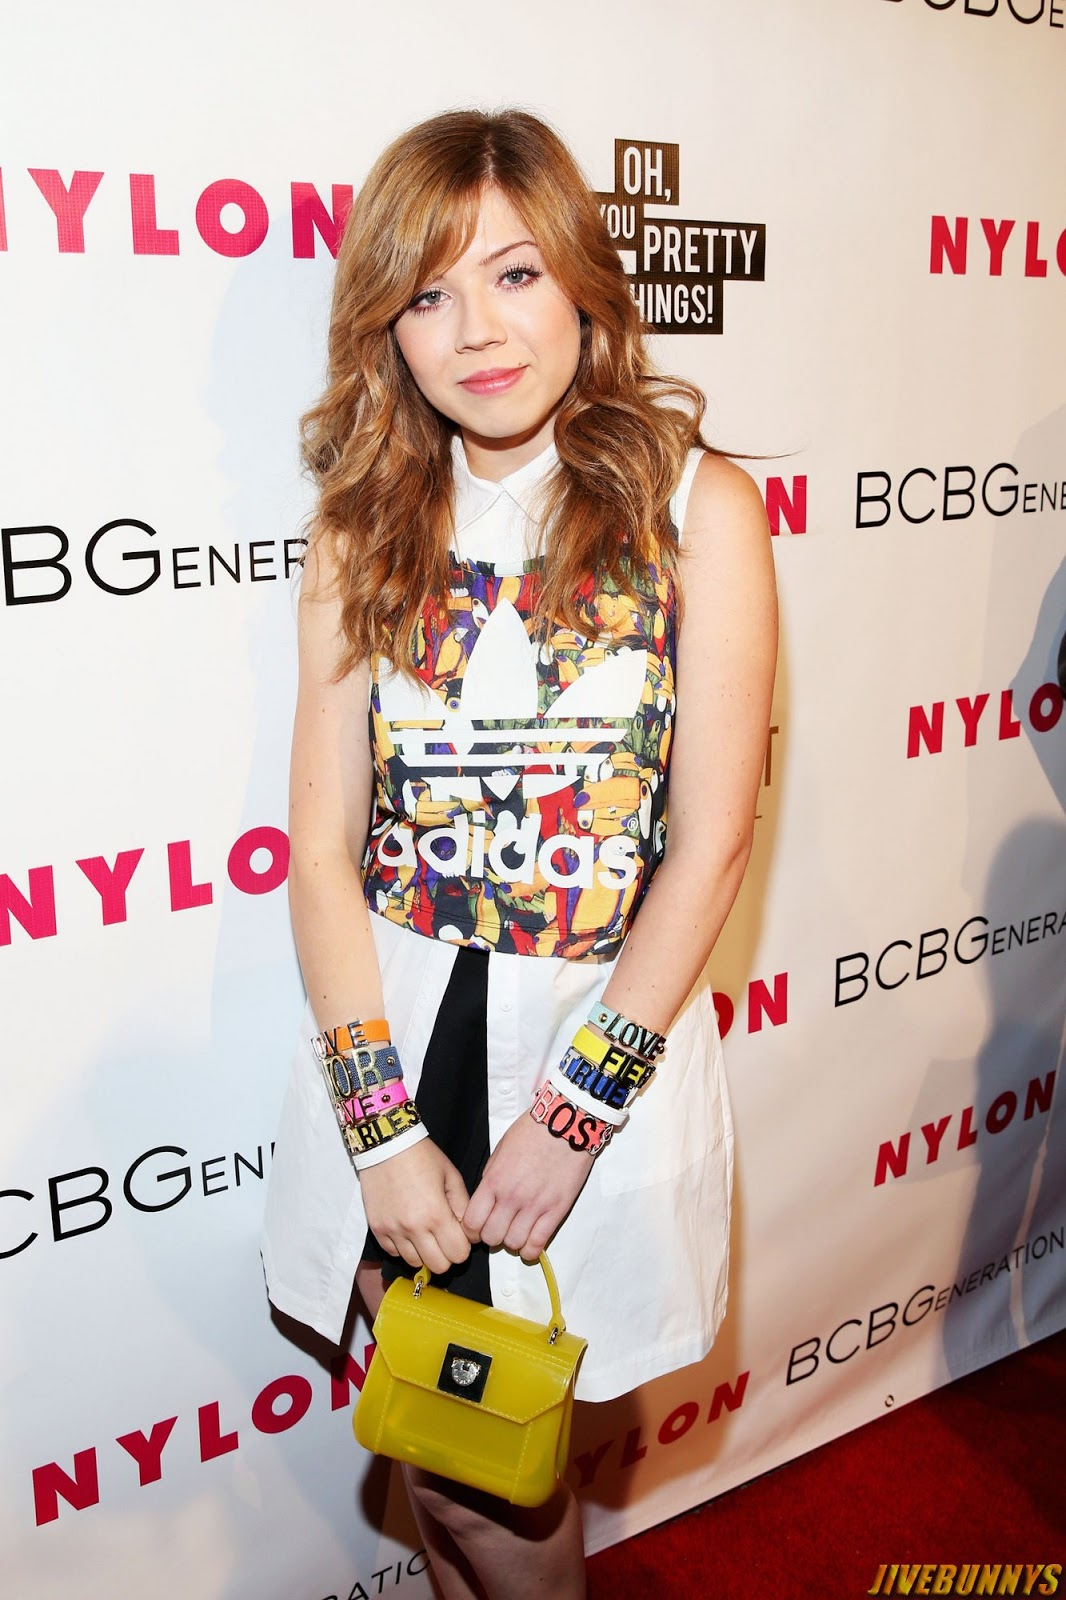 Nylon Magazine Young Hollywood Party in Los Angeles